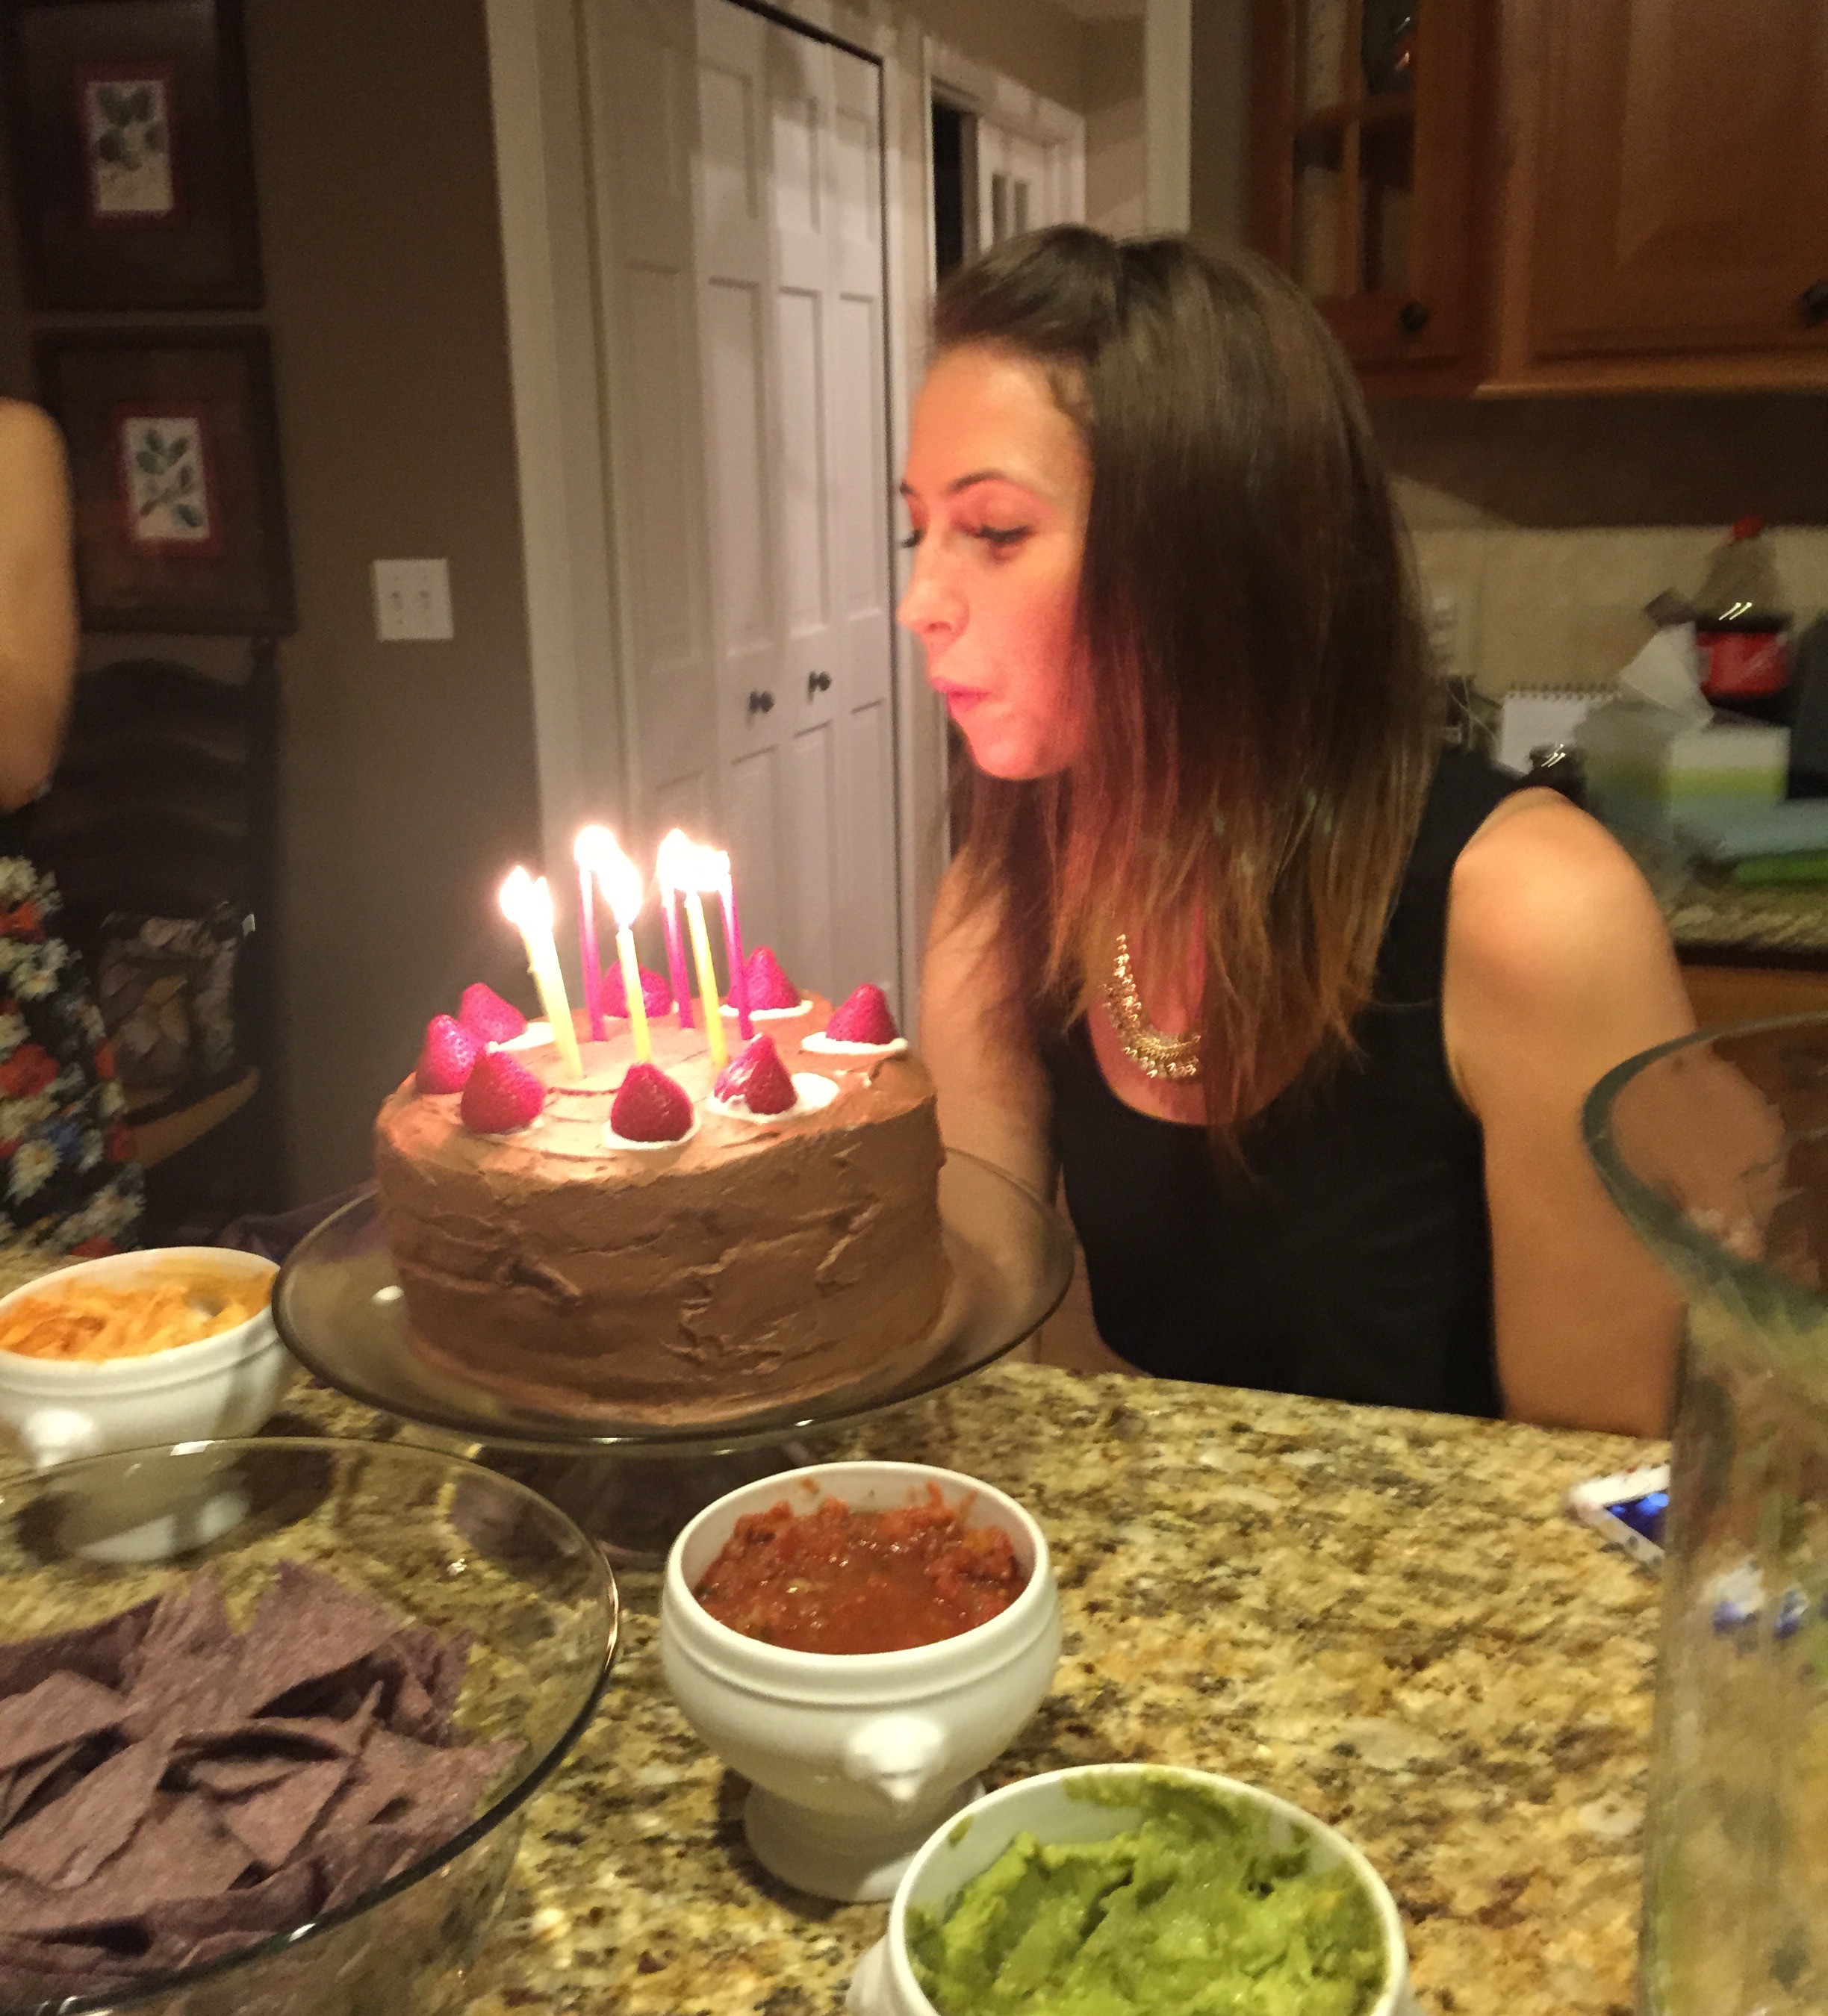 heather blowing out candles